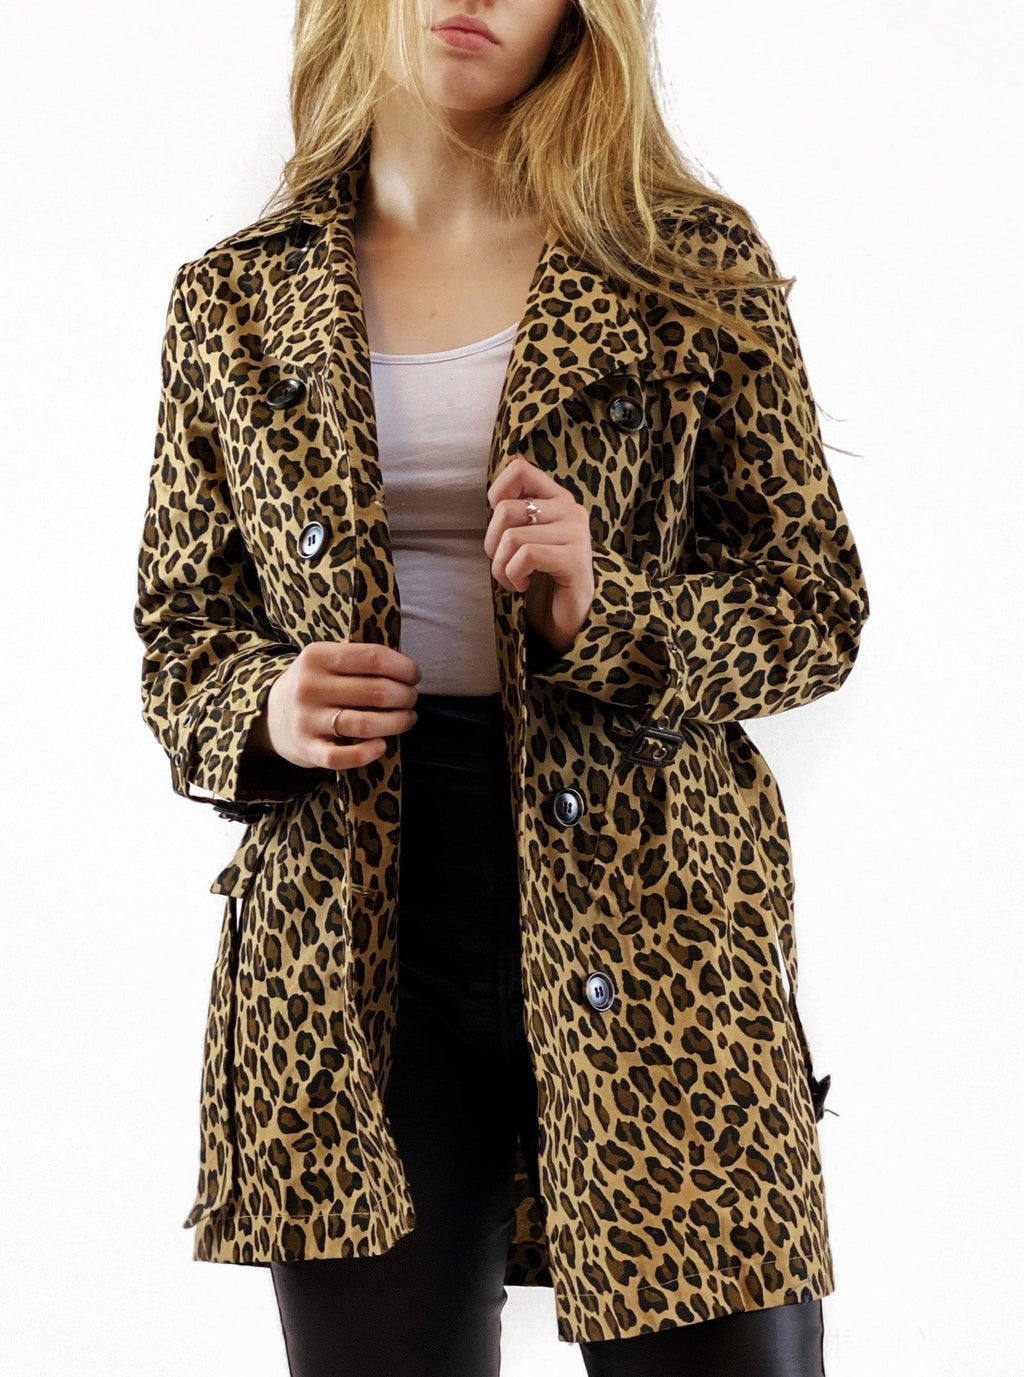 Leopard Trench Coat - bigcityboutique